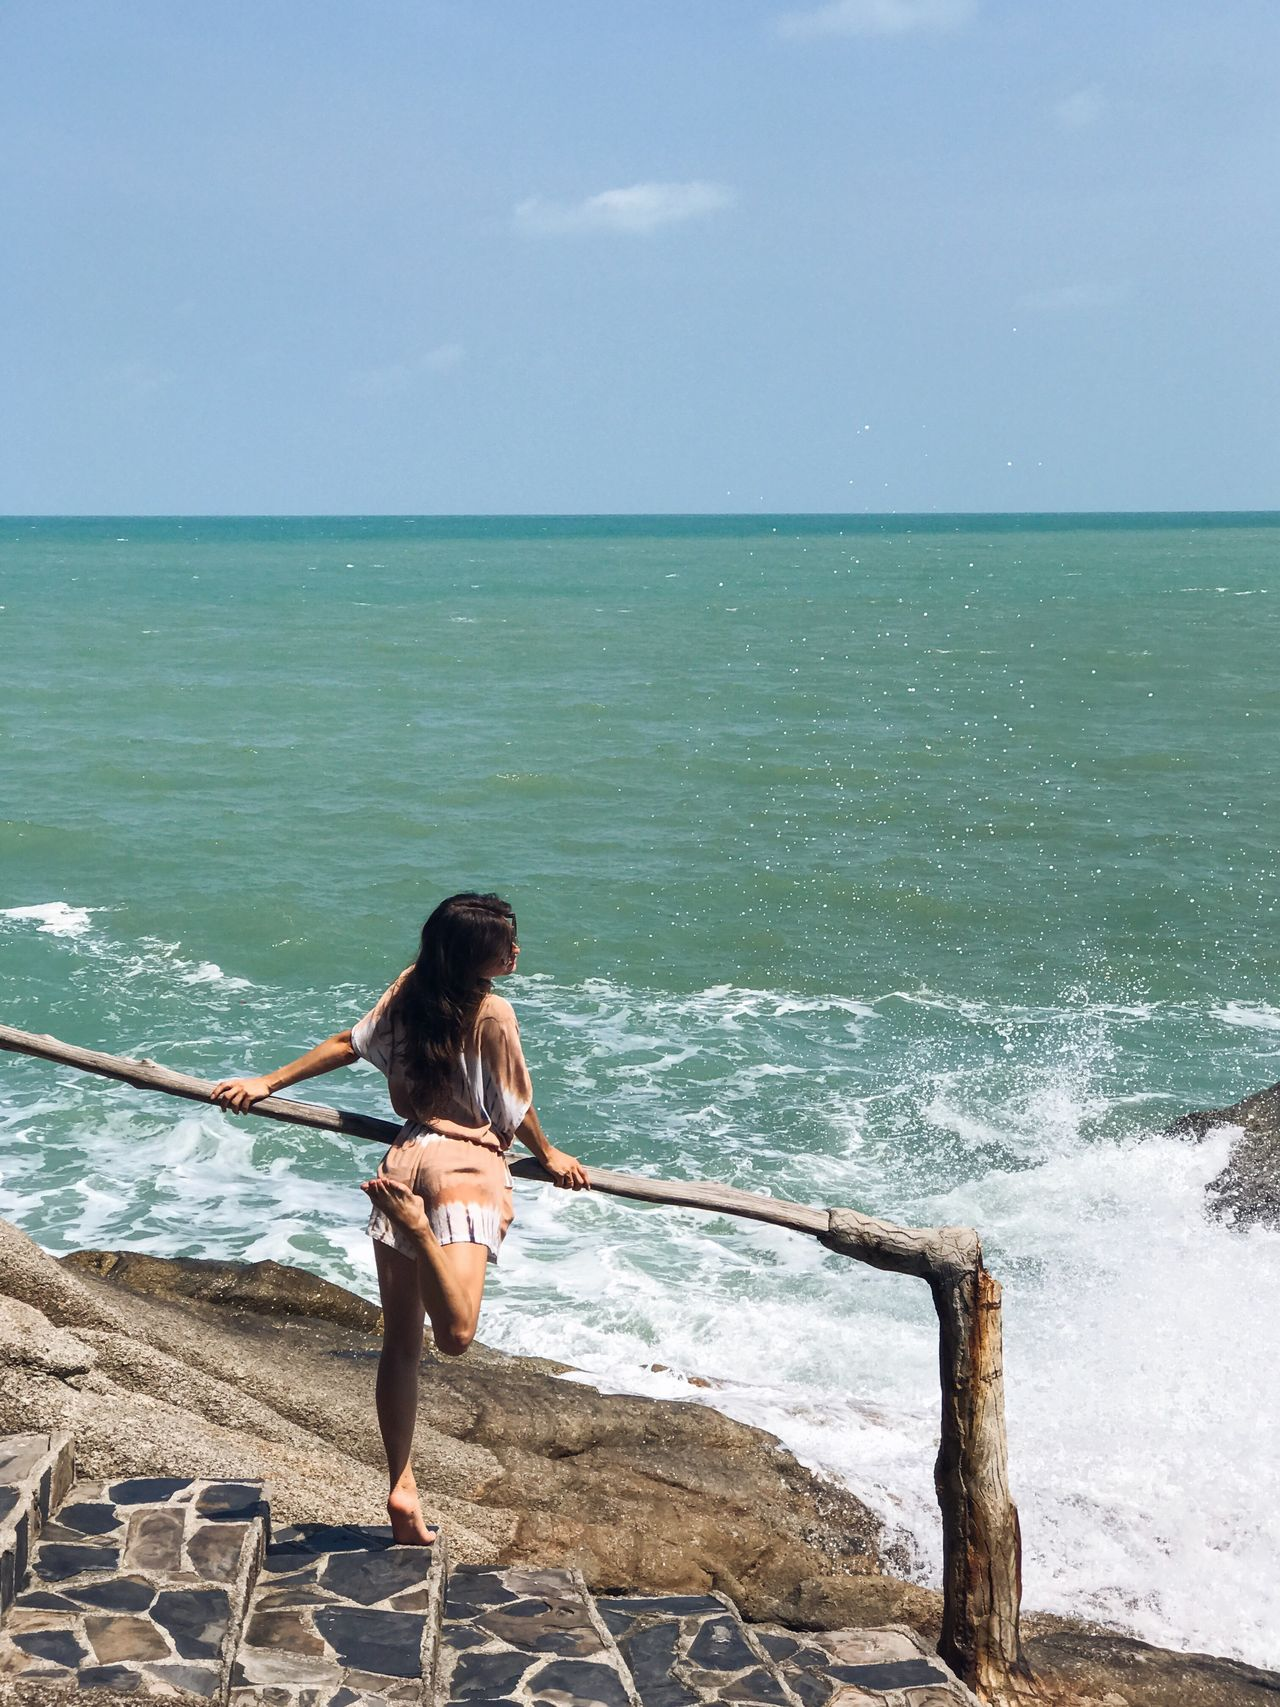 Sea Water Horizon Over Water Sky One Person Stone Steps Rocky Shore Scenics Beauty In Nature Real People Outdoors Standing Full Length Lifestyles Young Adult People One Woman Only Beach Railing Rear View Casual Clothing Leisure Activity PlayfullMood Splashing Wave